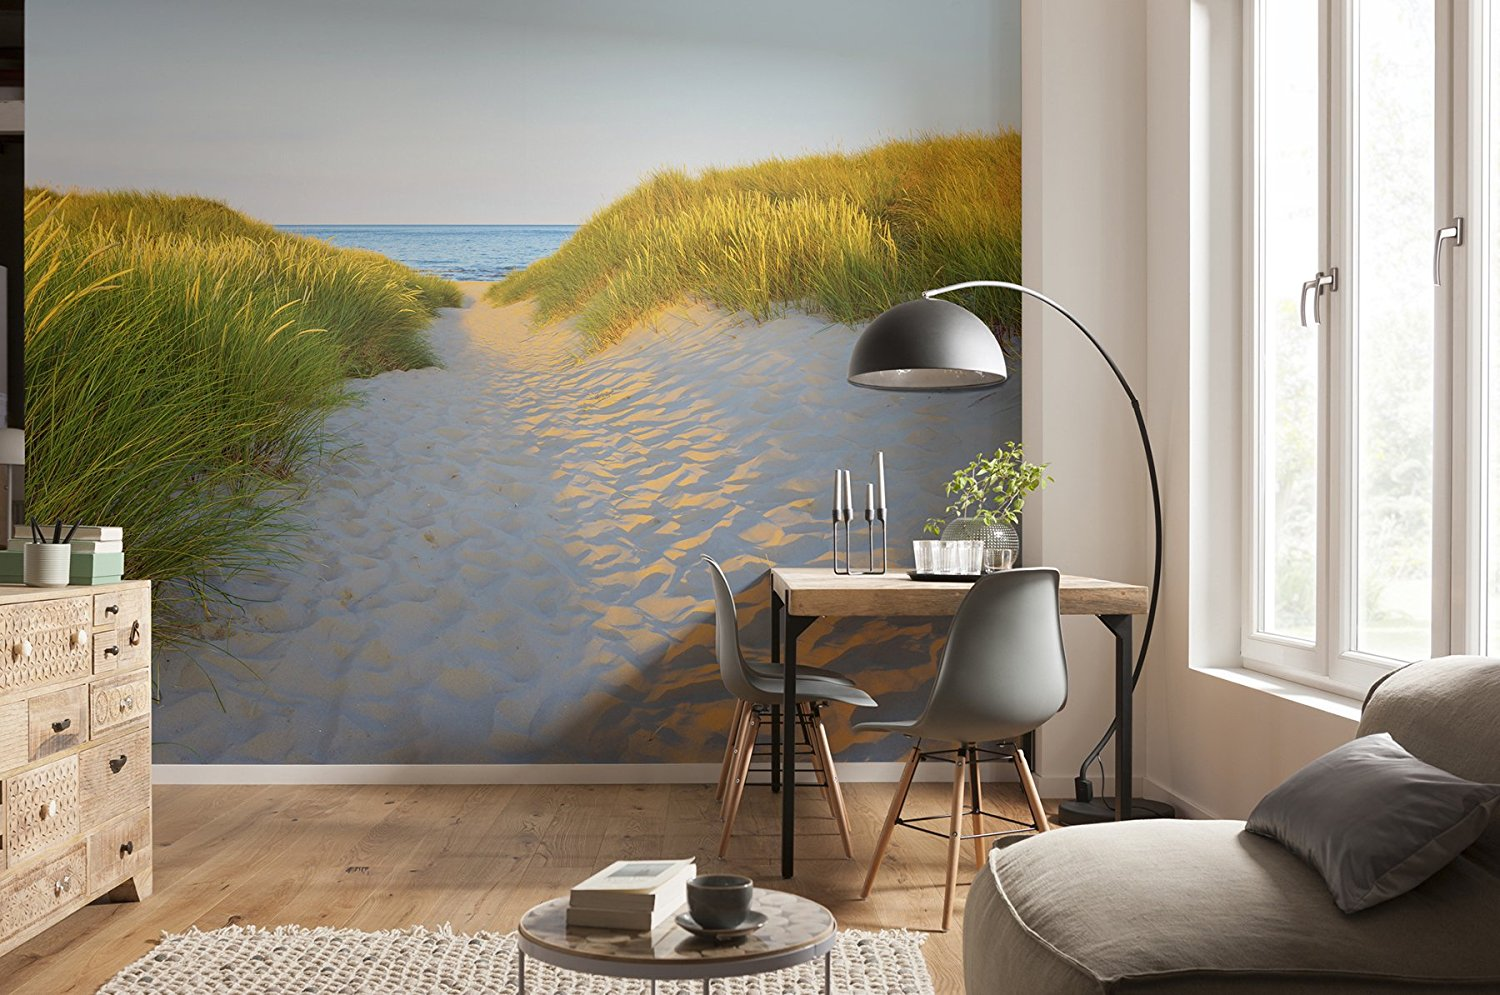 Sandy Path Wall Mural 8-995 by Komar